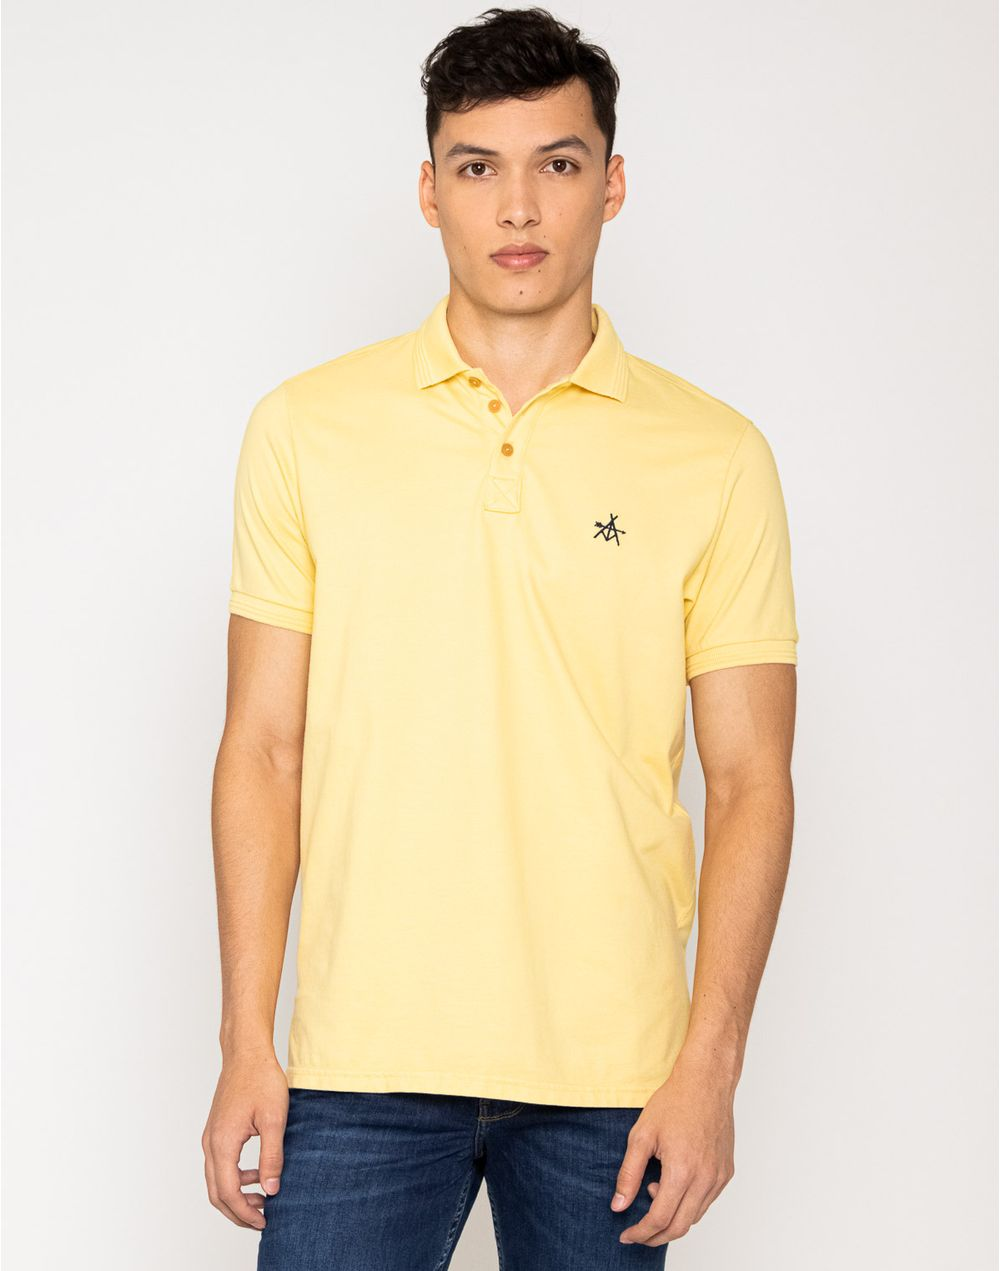 polo-110981-amarillo-1.jpg